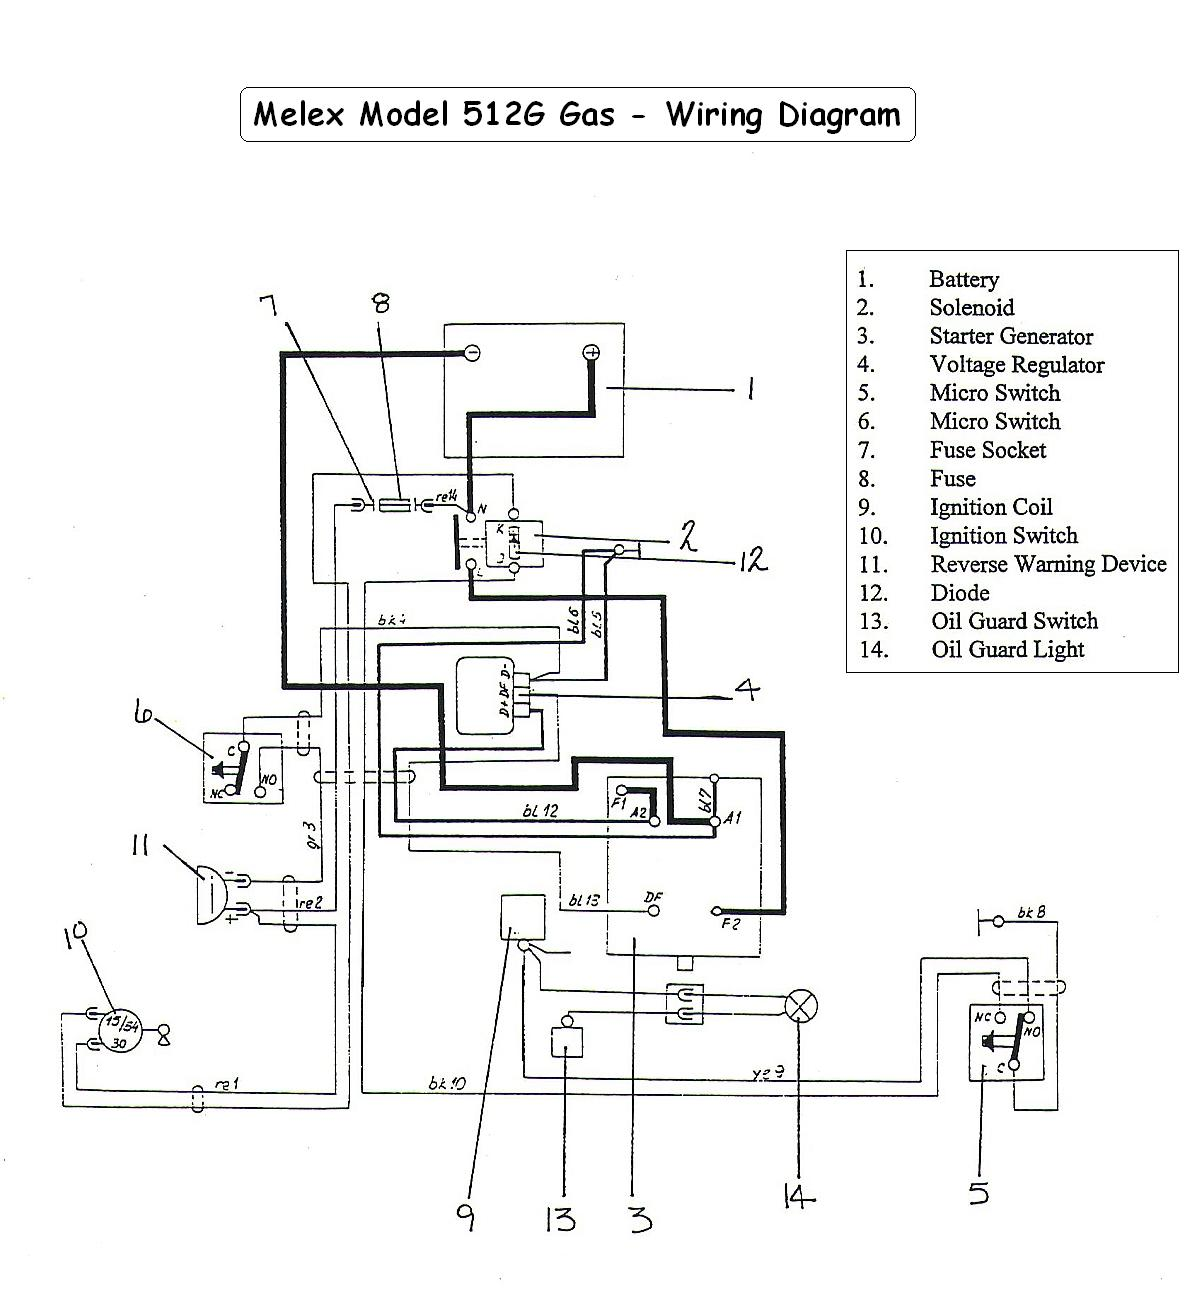 Rel Sub Wiring Diagram 22 Images Diagrams Passive Subwoofer Vintagegolfcartparts Com Melex512g At